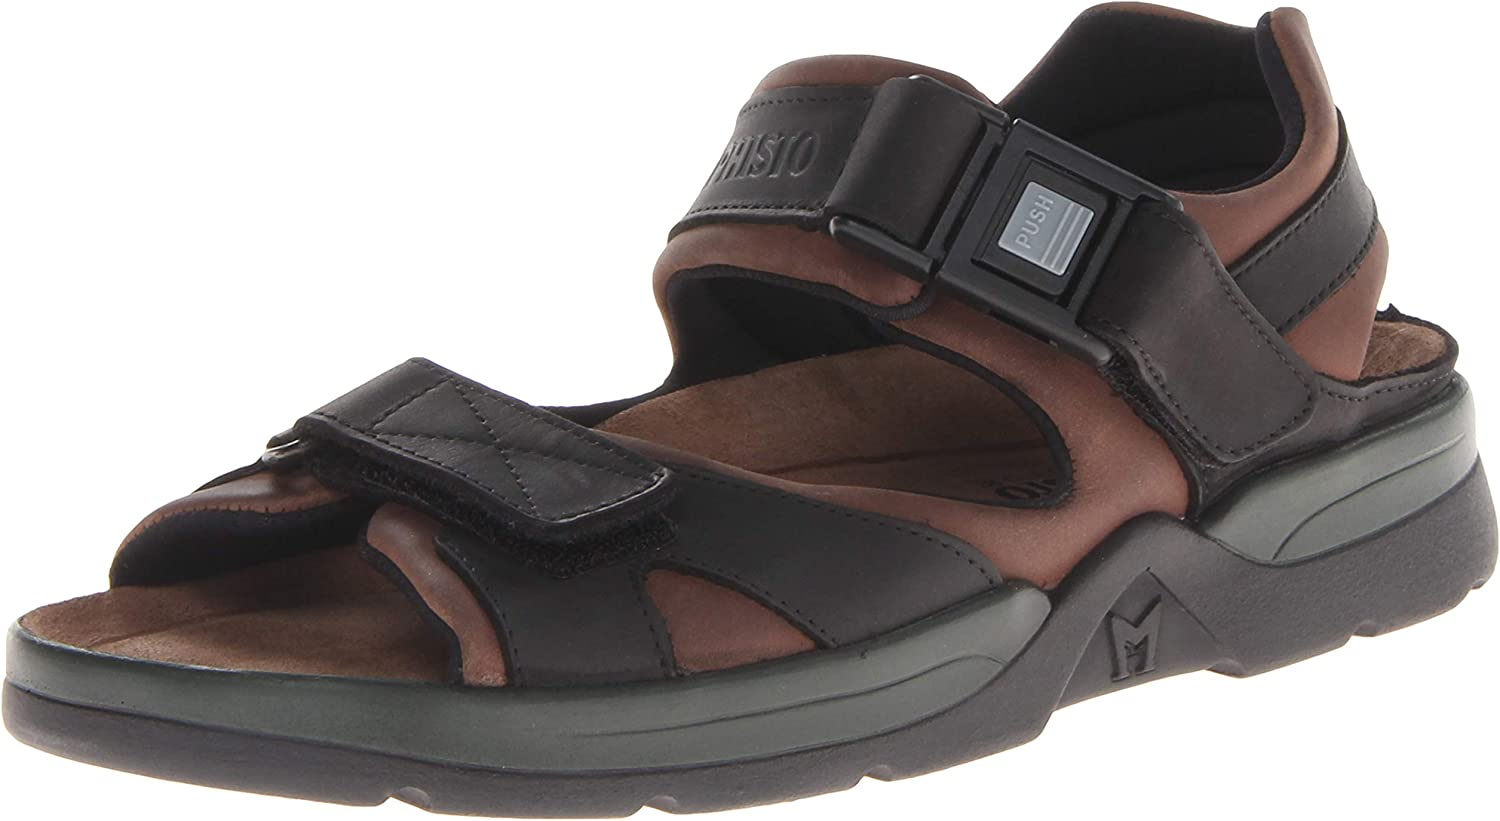 Mephisto Men's Shark Sandals